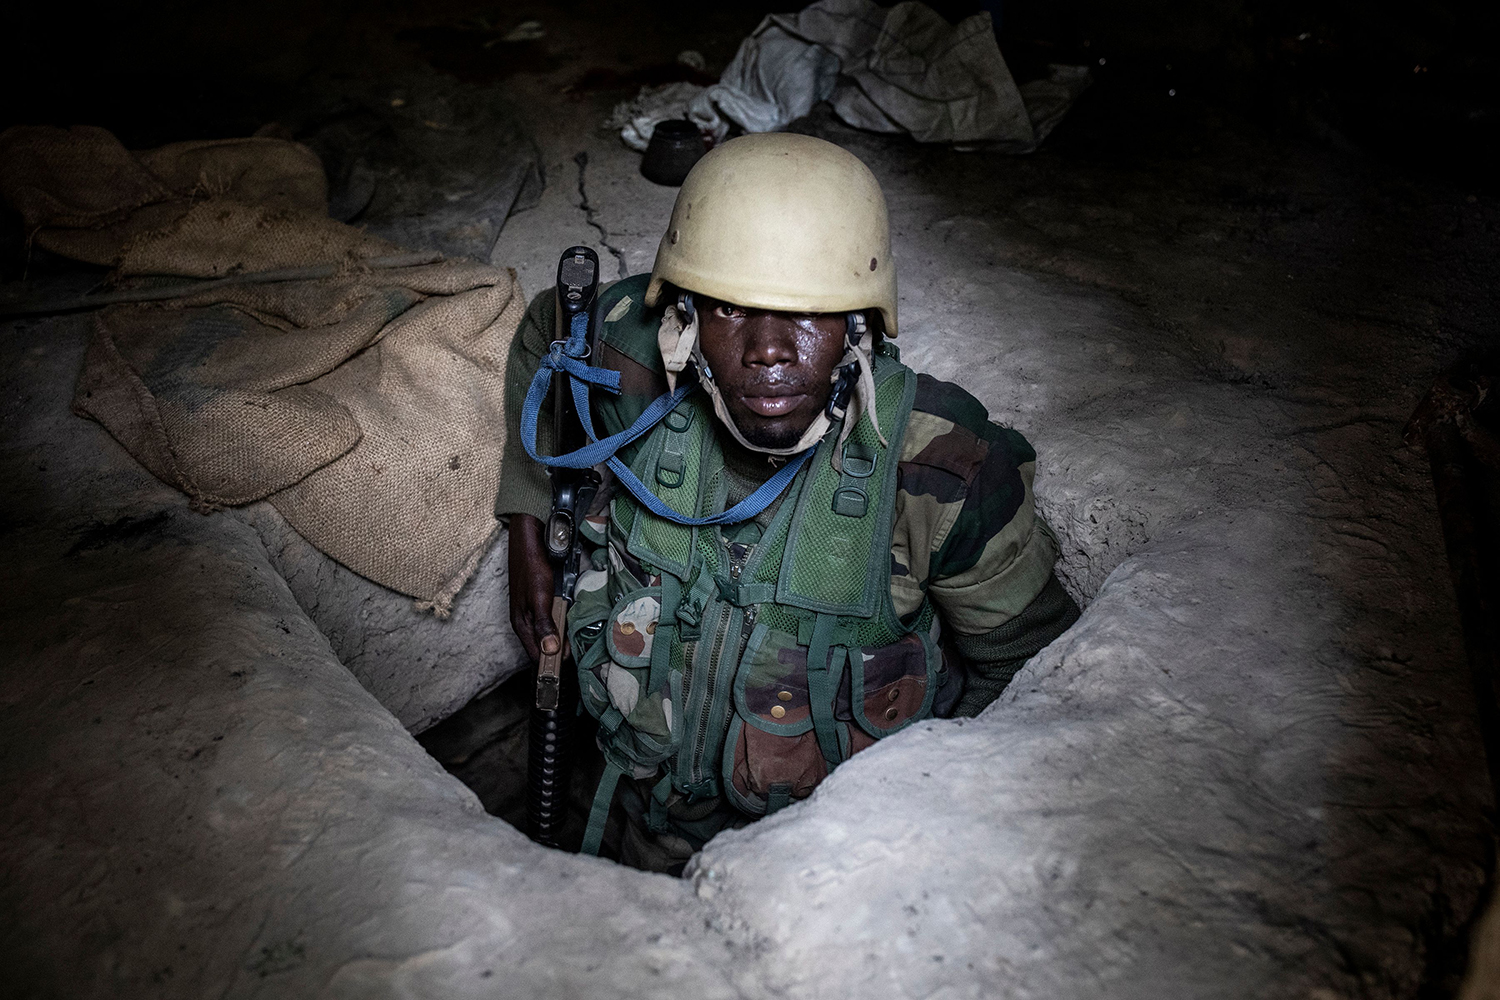 A member of the Senegalese Armed Forces emerges from an underground bunker at a recently captured Movement of Democratic Forces of Casamance rebel base on Feb. 9. The conflict in Casamance, which is separated from the rest of Senegal by Gambia, has claimed thousands of lives since it first broke out in 1982. JOHN WESSELS/AFP via Getty Images